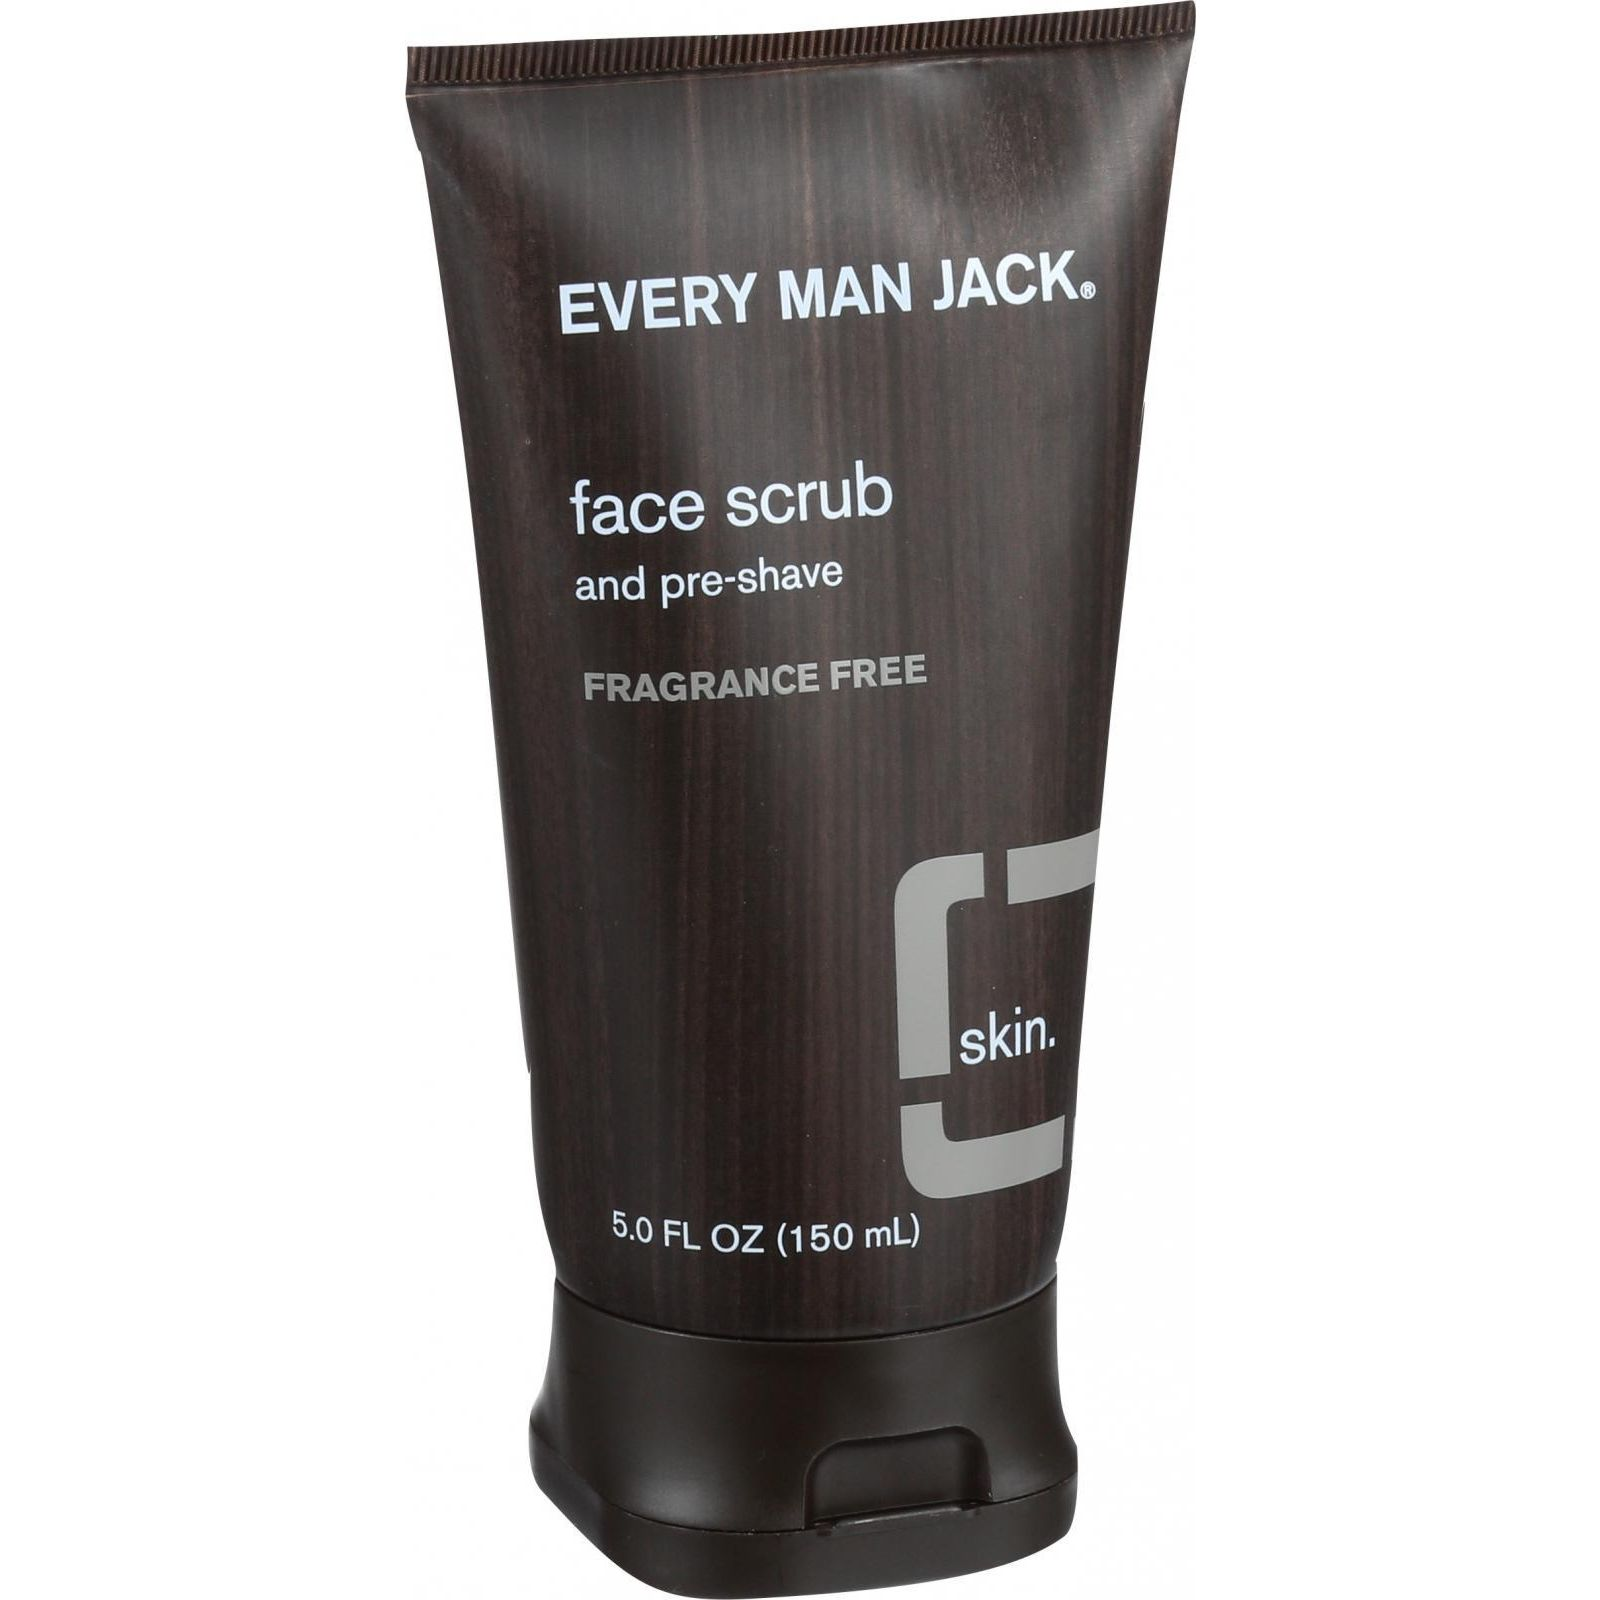 EVERY MAN JACK gives you exceptional performance using many naturally derived ingredients. No parabens, no phthalates, no dyes, no sodium lauryl sulfate, and never tested on animals.